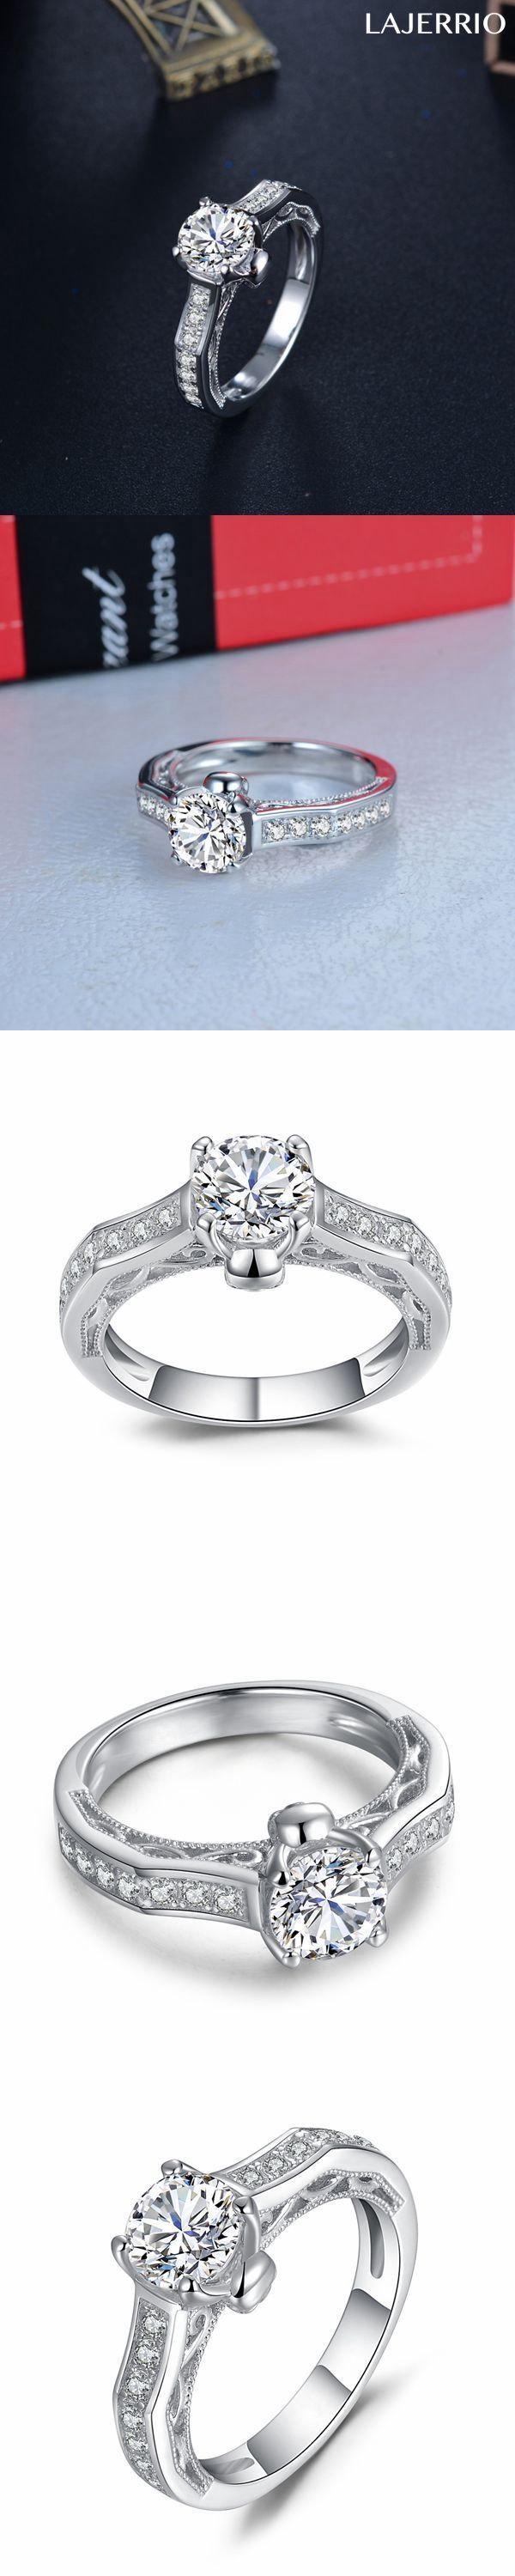 Lajerrio Jewelry Round Cut White Sapphire Sterling Silver Skull Engagement Ring